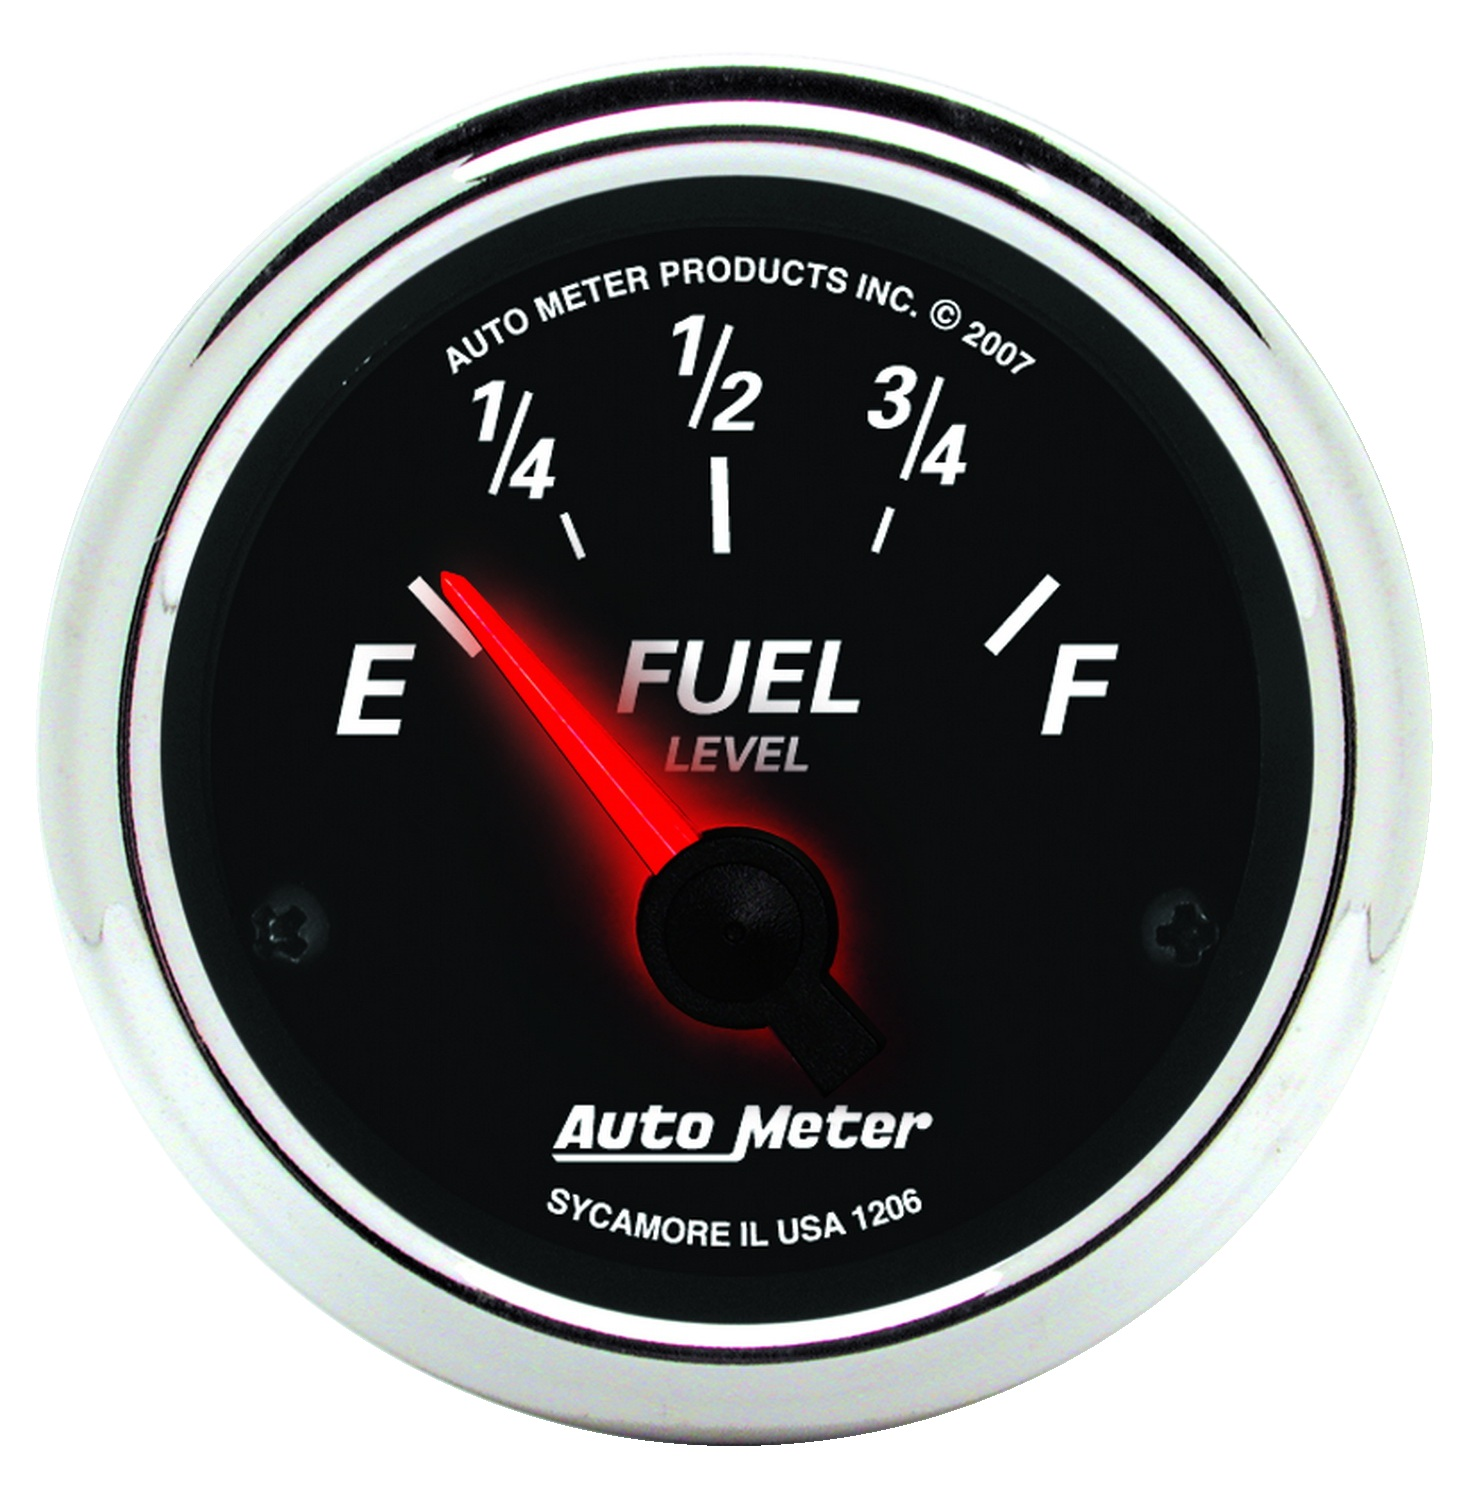 Auto Meter 1206 Designer Black II; Fuel Level Gauge at Sears.com